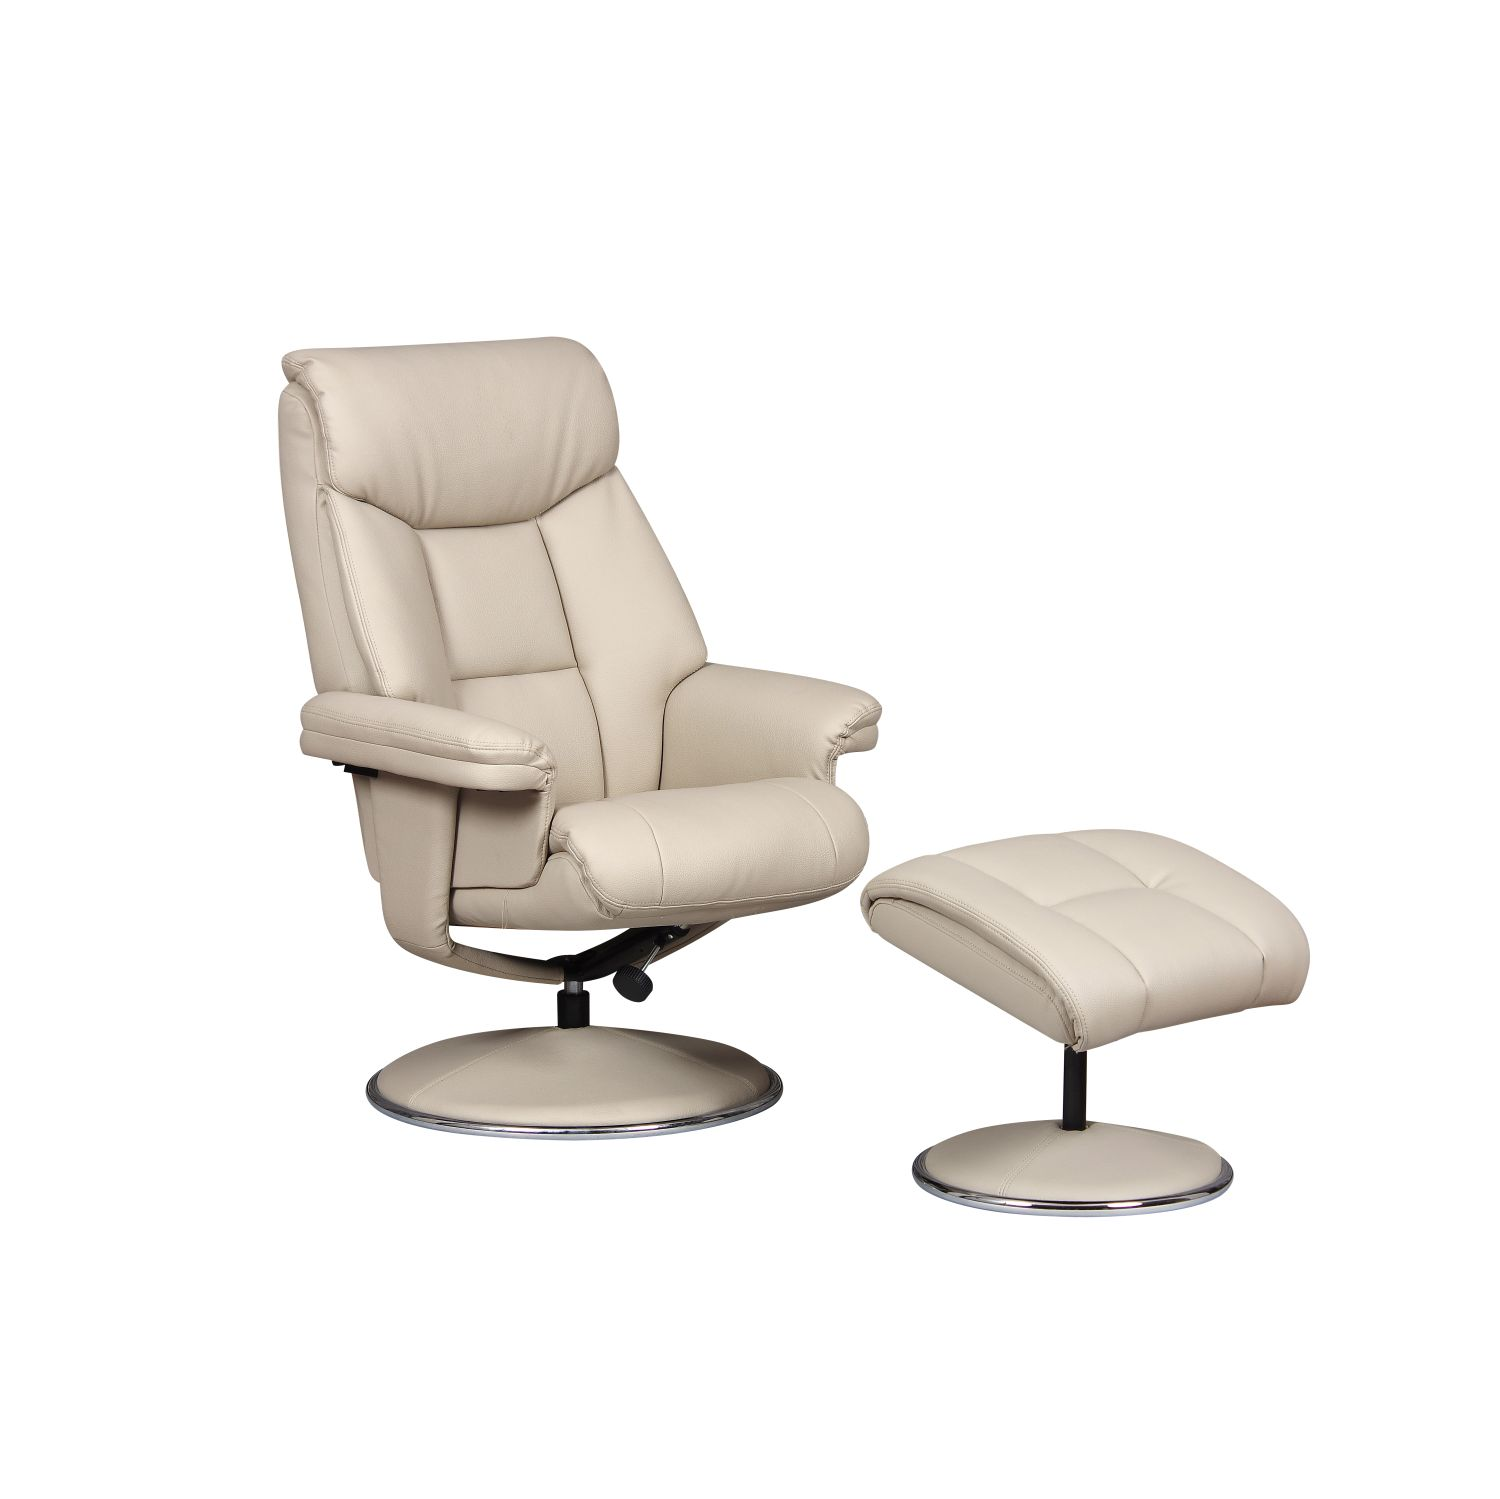 Image of Casa Bayonne Leather Look Chair & Footstool